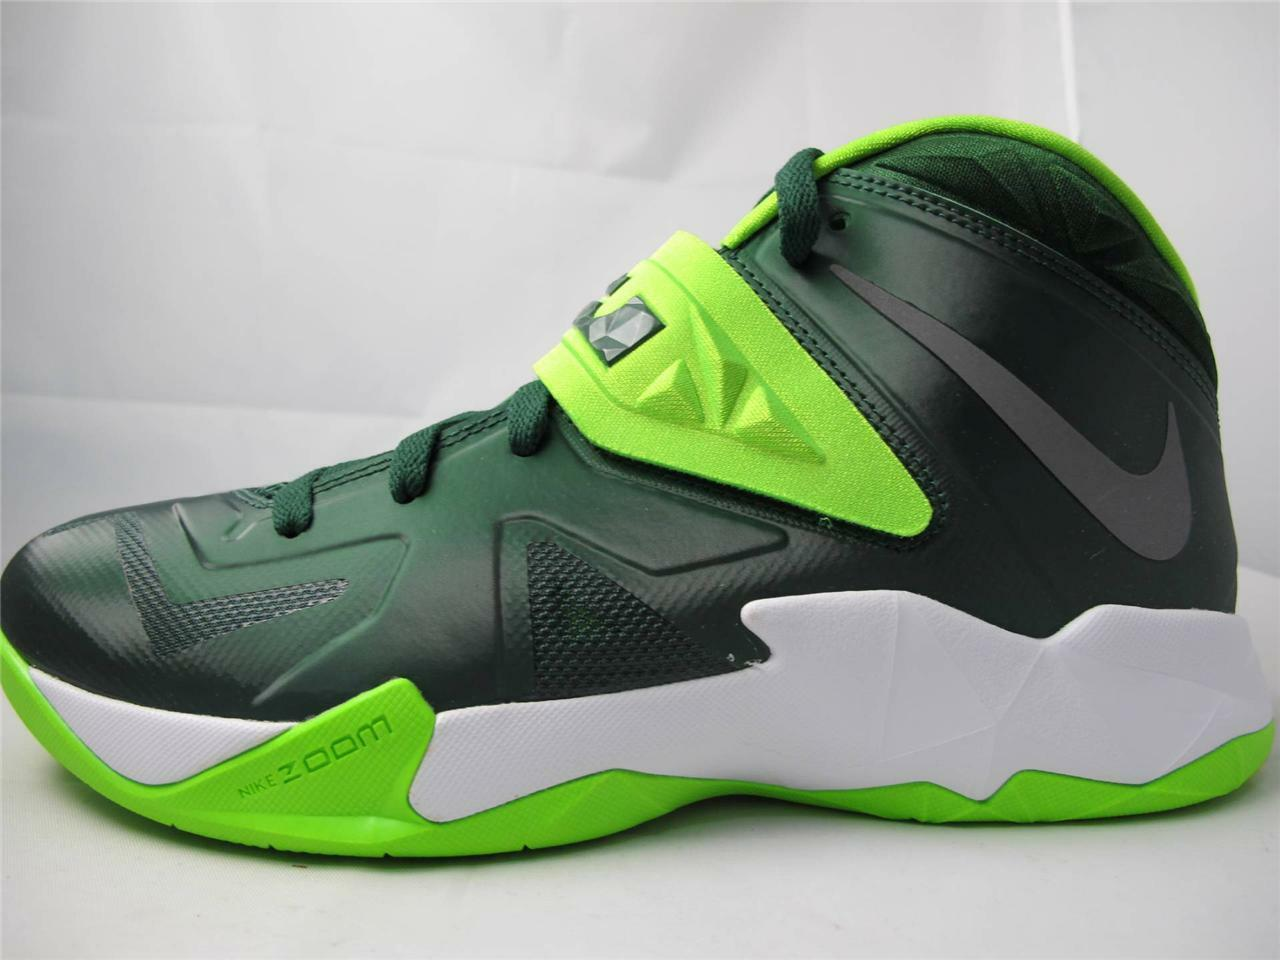 NEW Hommes NIKE BASKETBALL ZOOM SOLDIER VII TB Baskets 599263-300 599263-300 Baskets 1eb603